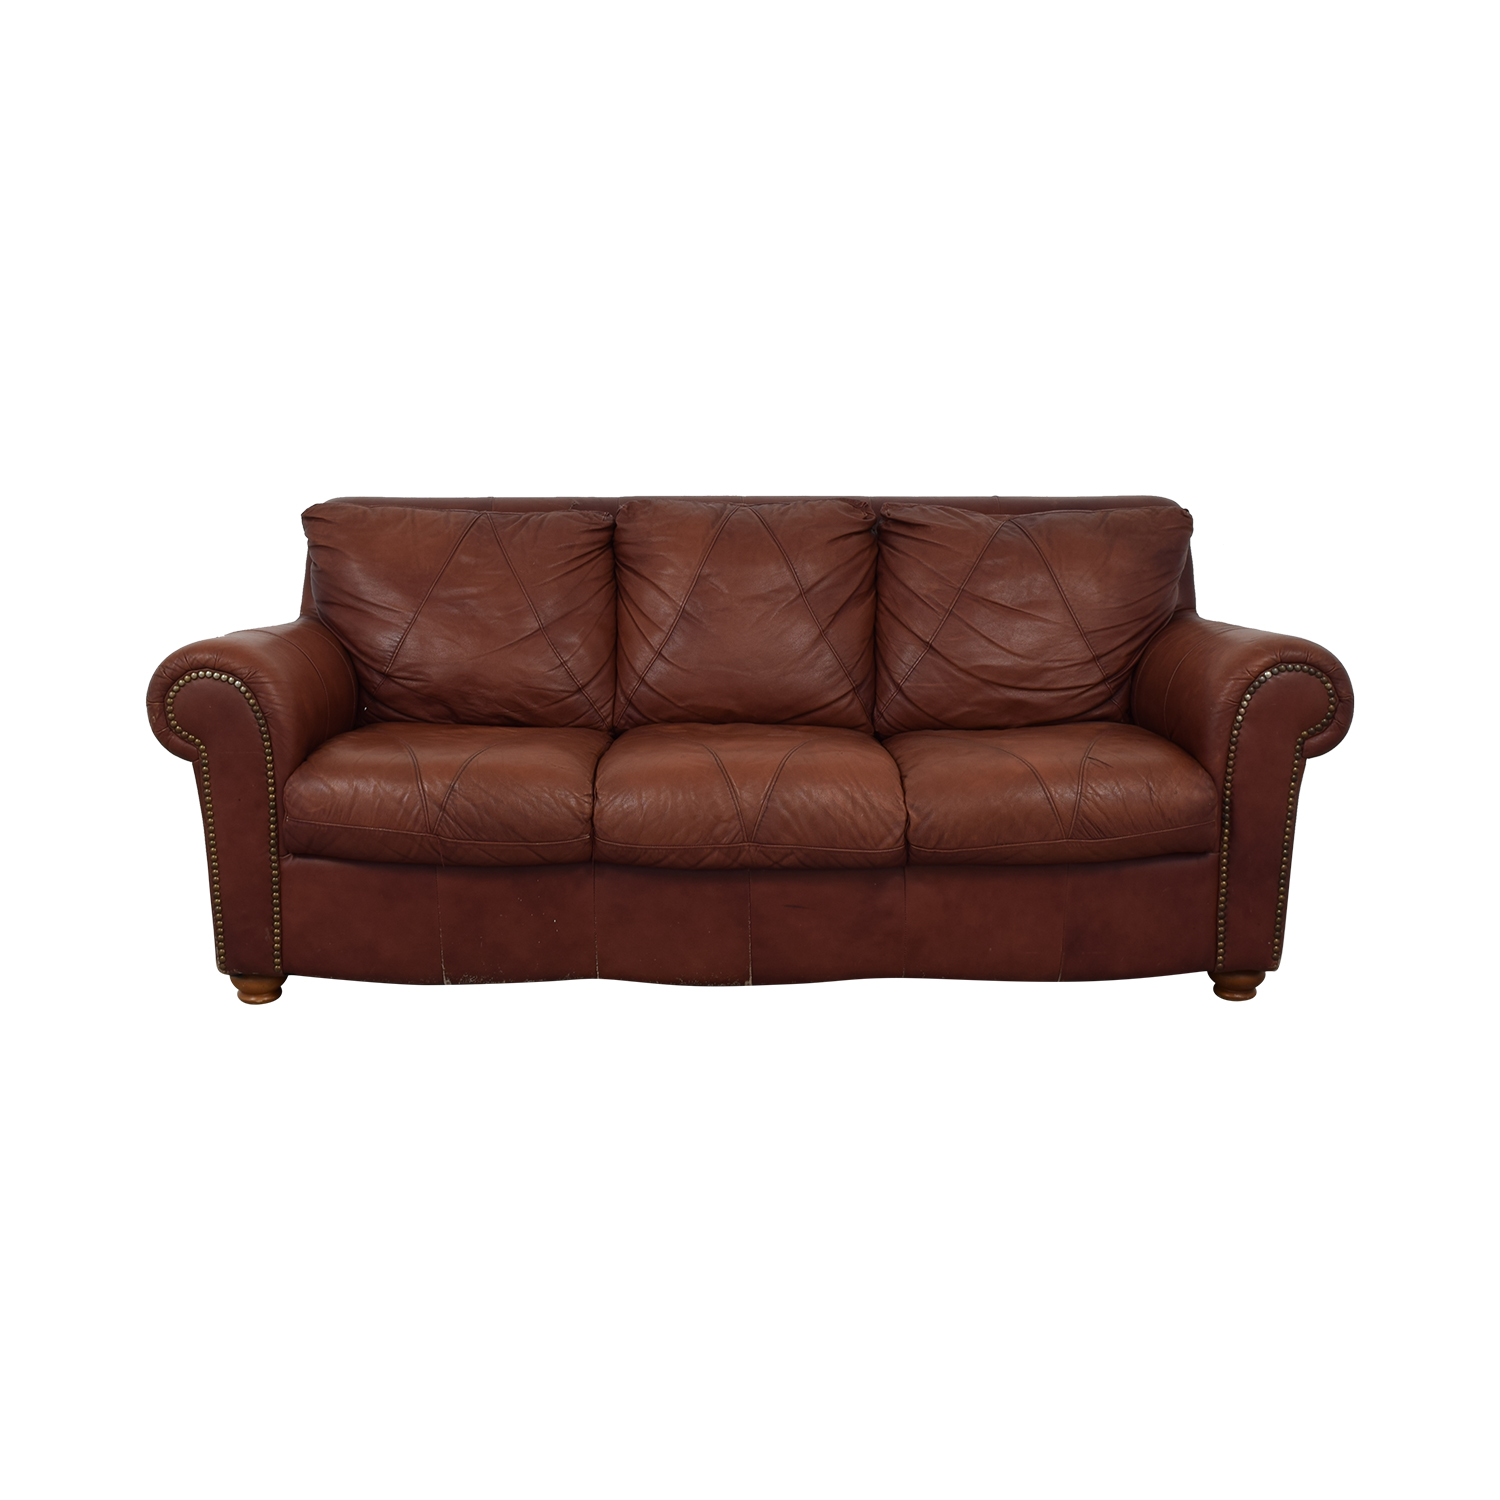 shop  Brown Leather Nailhead Three-Cushion Couch online